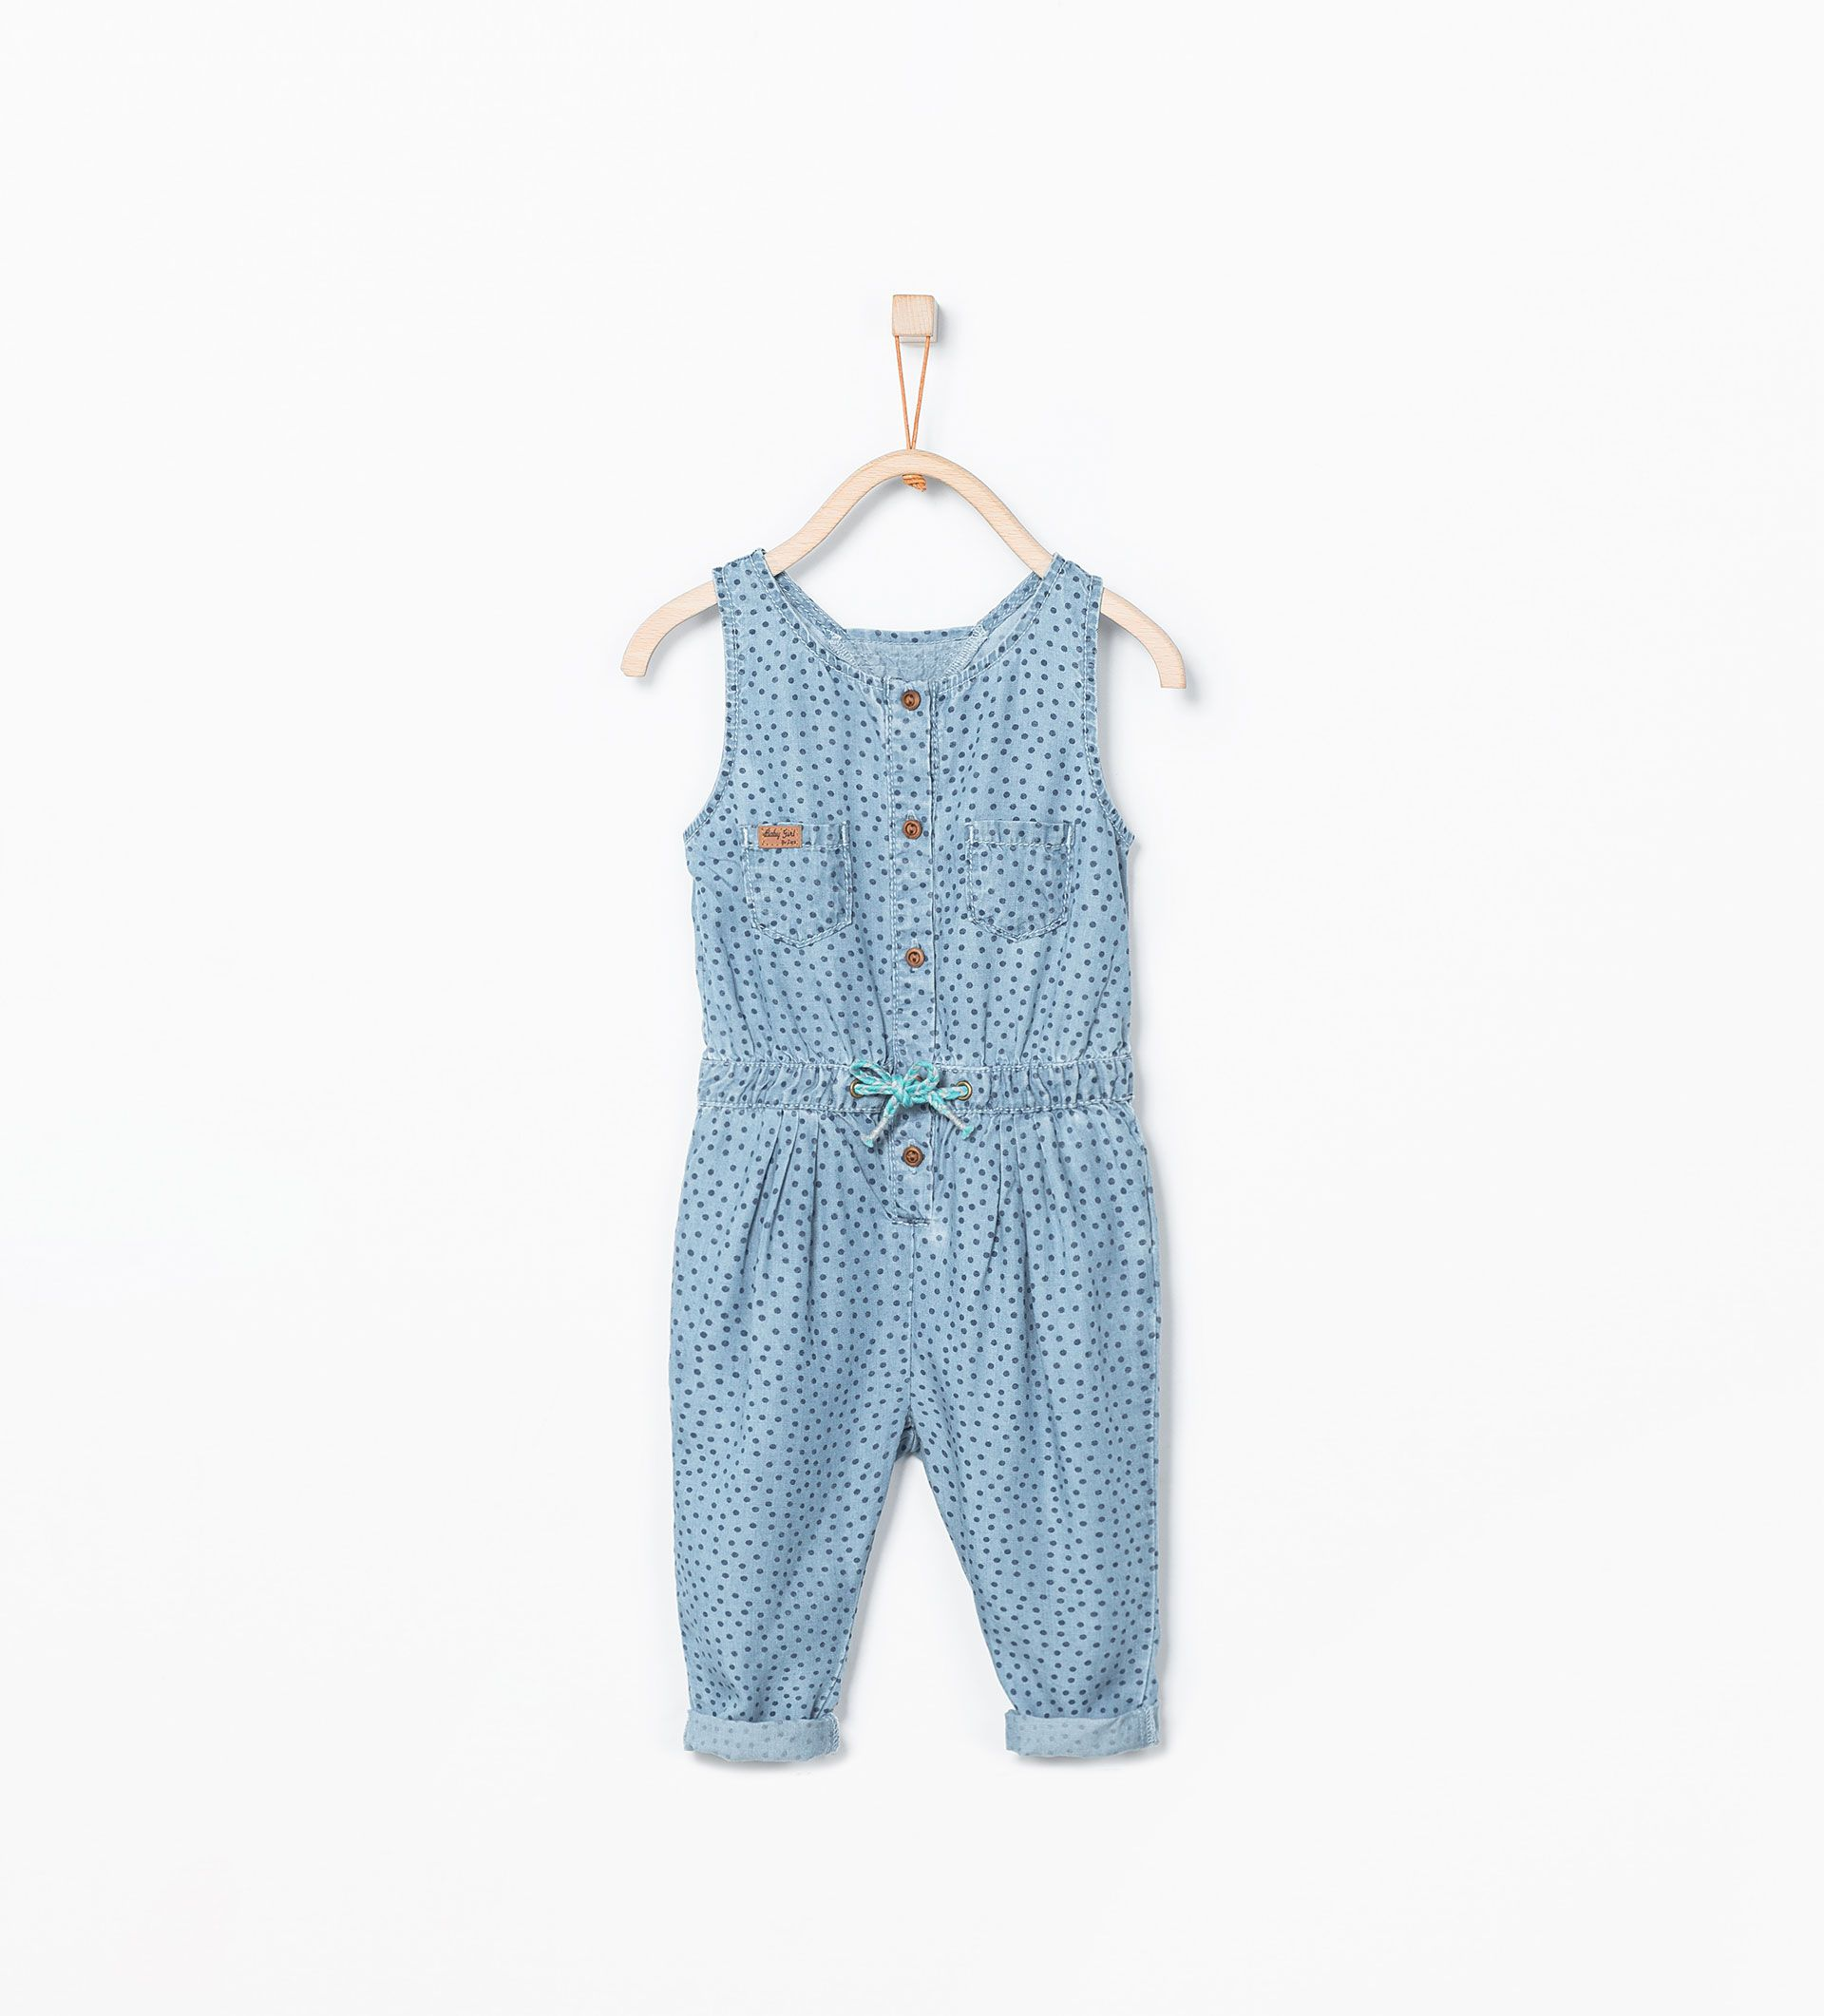 Combinaison longue denim robes b b fille 3 mois 3 ans enfants zara canada fashion - Vetement bebe fille fashion ...